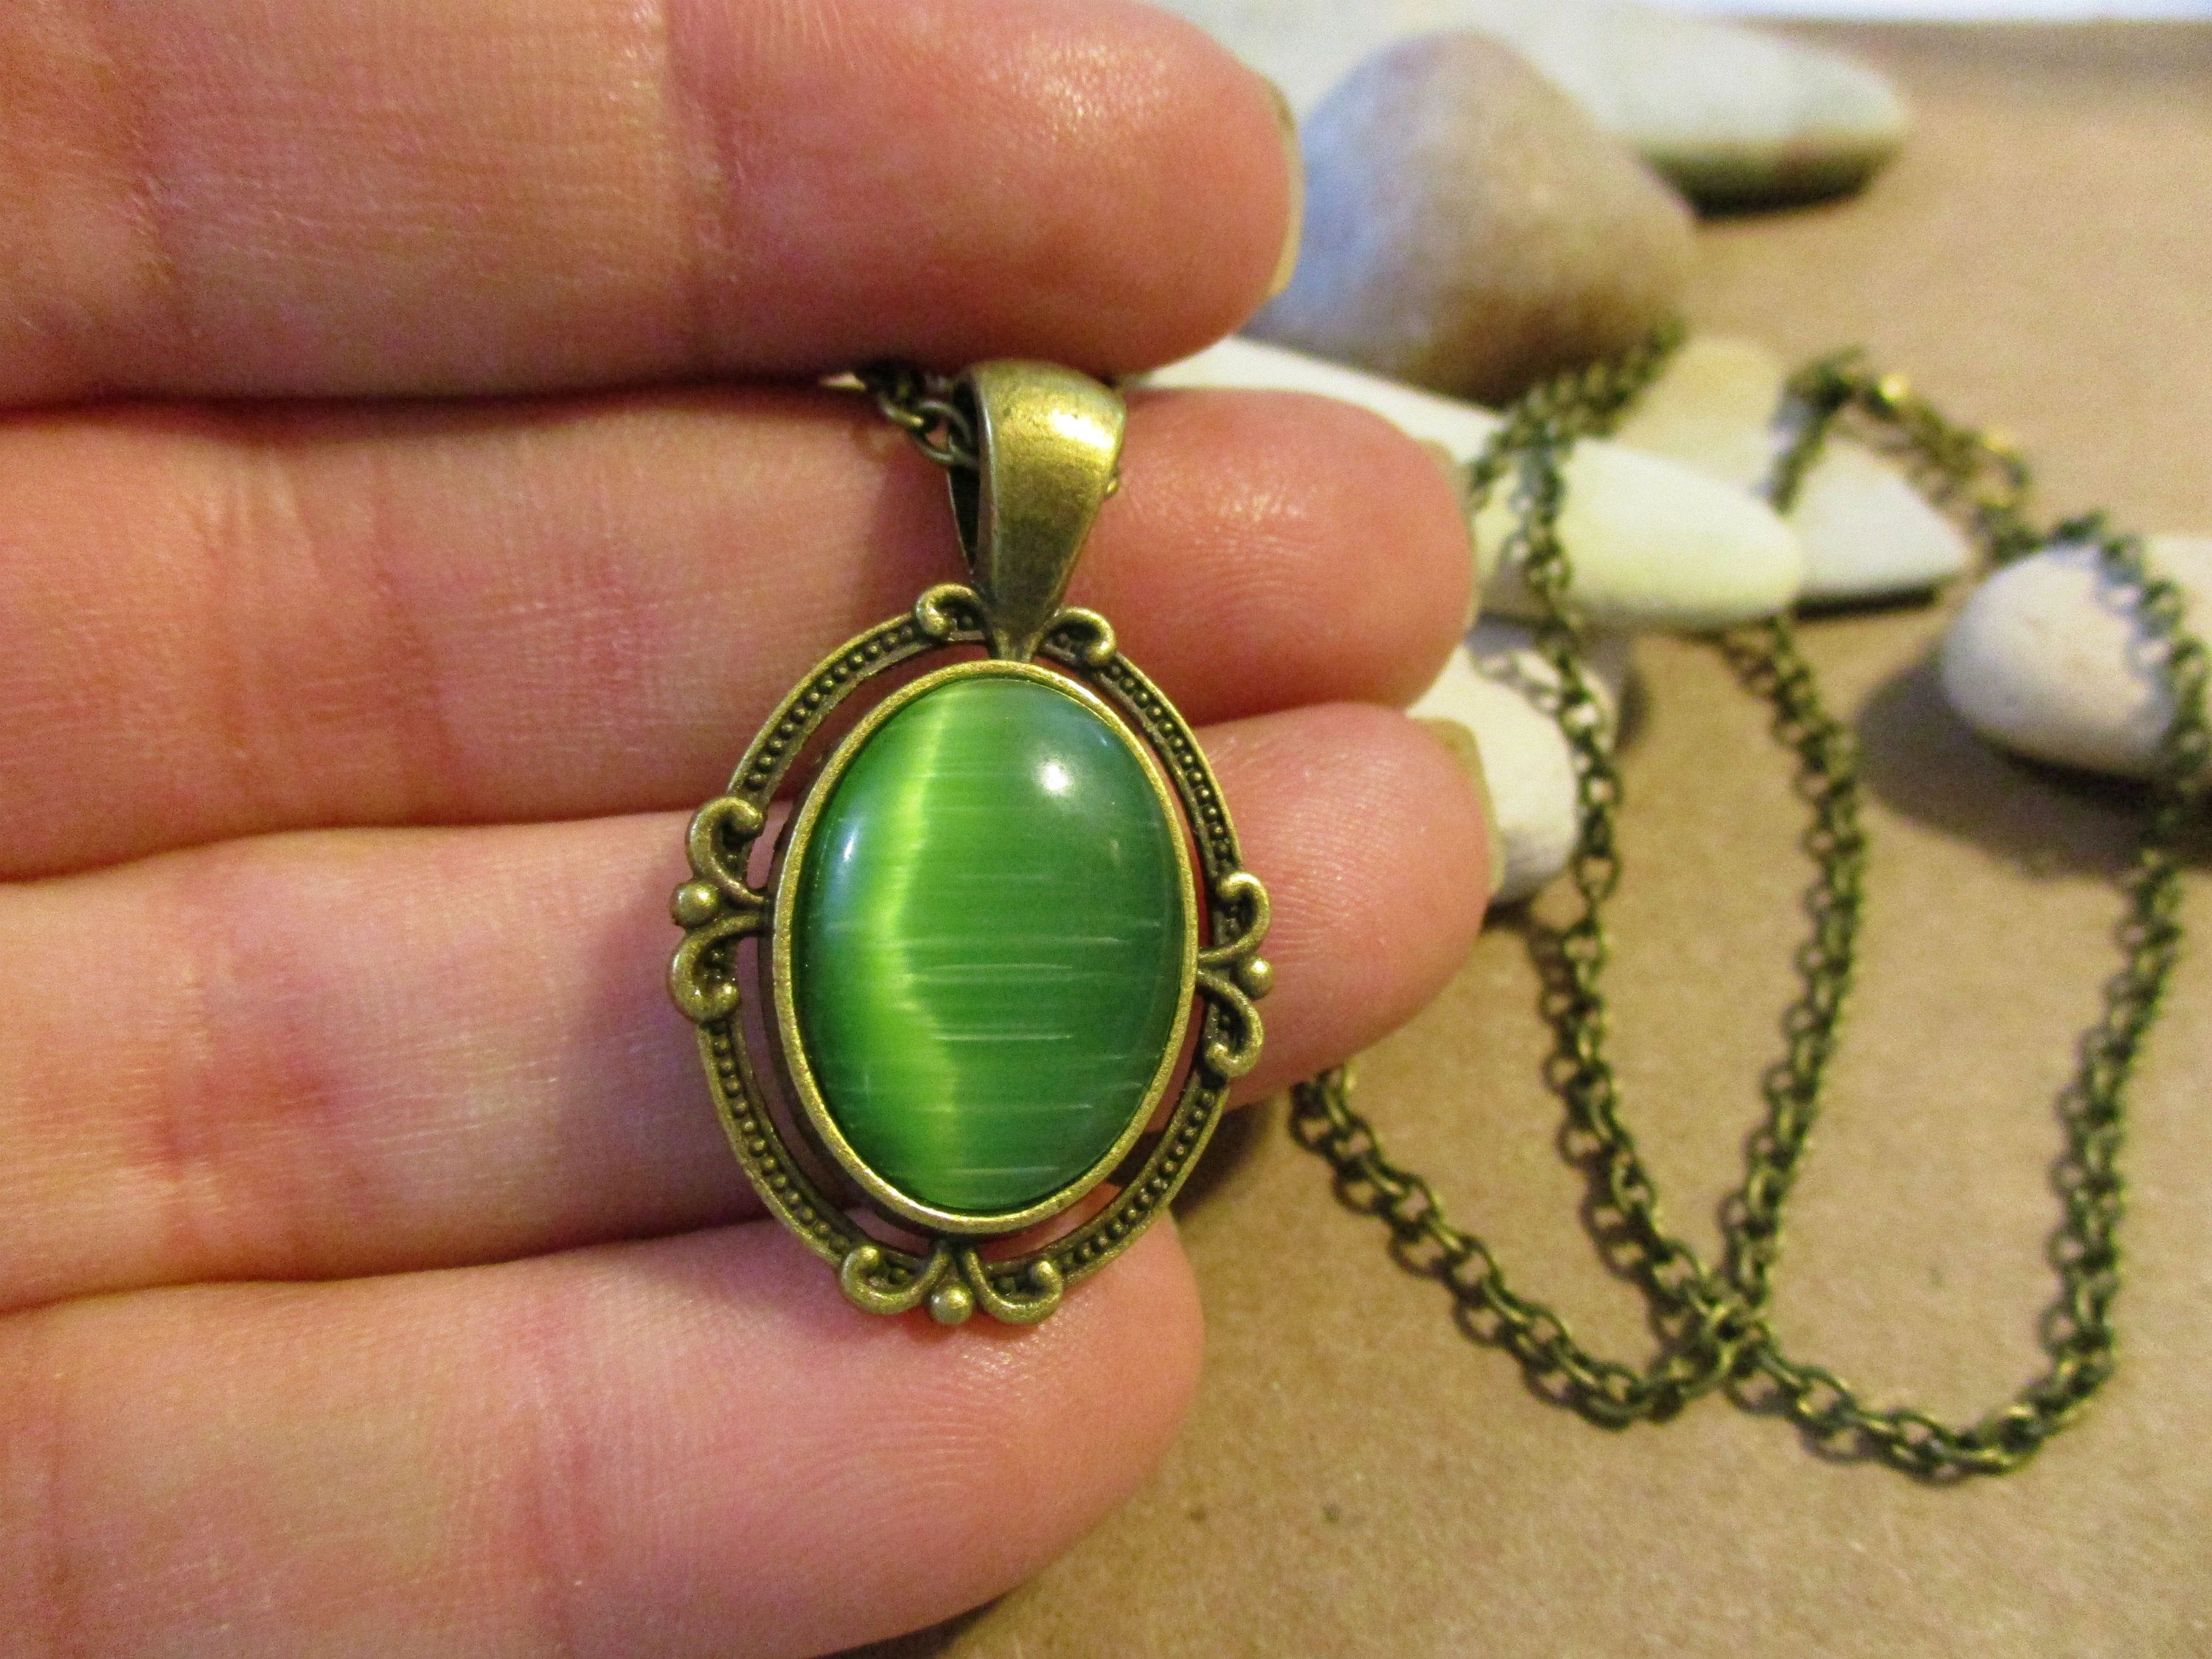 Necklace green leaf glass bronze pearl of loose stones.